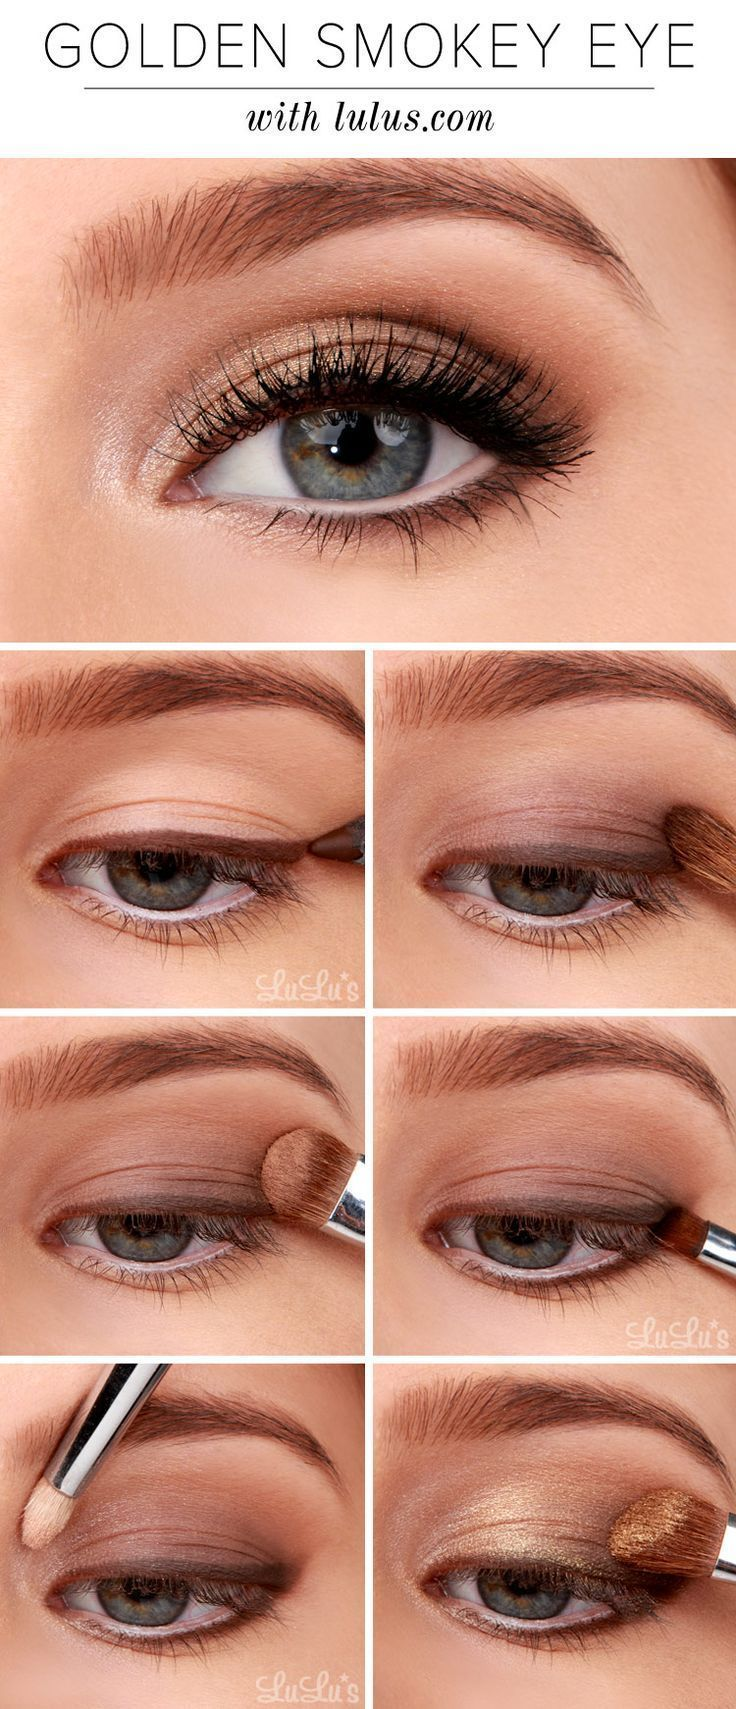 | Augen Make-up Tipps, Make-up Lidschatten, Wie Li…